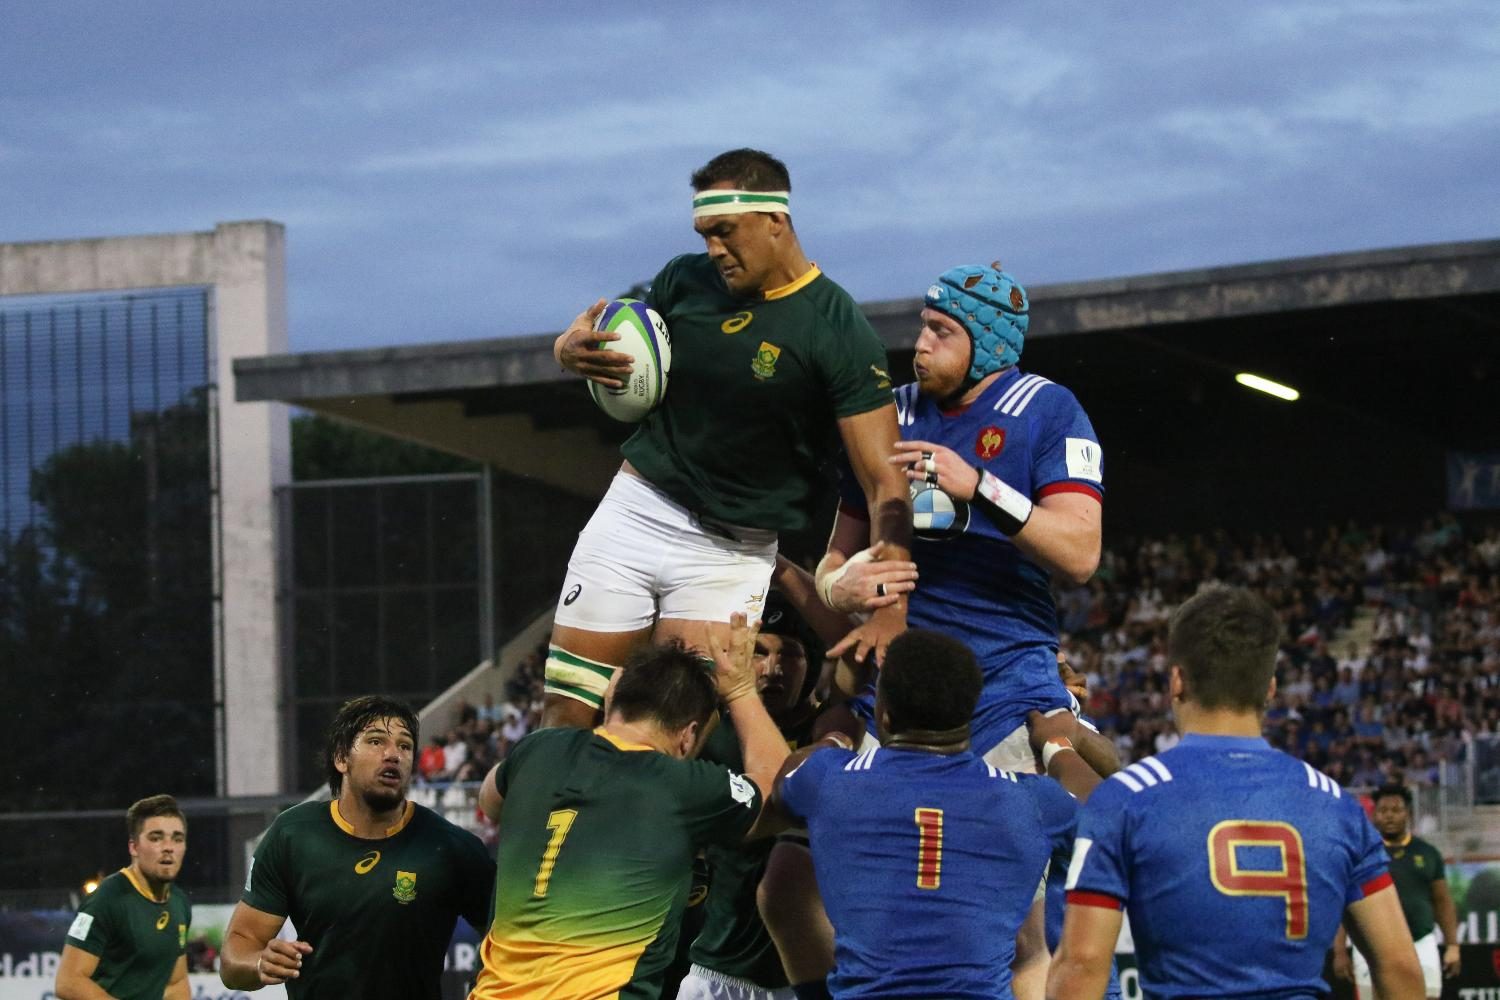 World Rugby U20 Championship 2018: South Africa v France